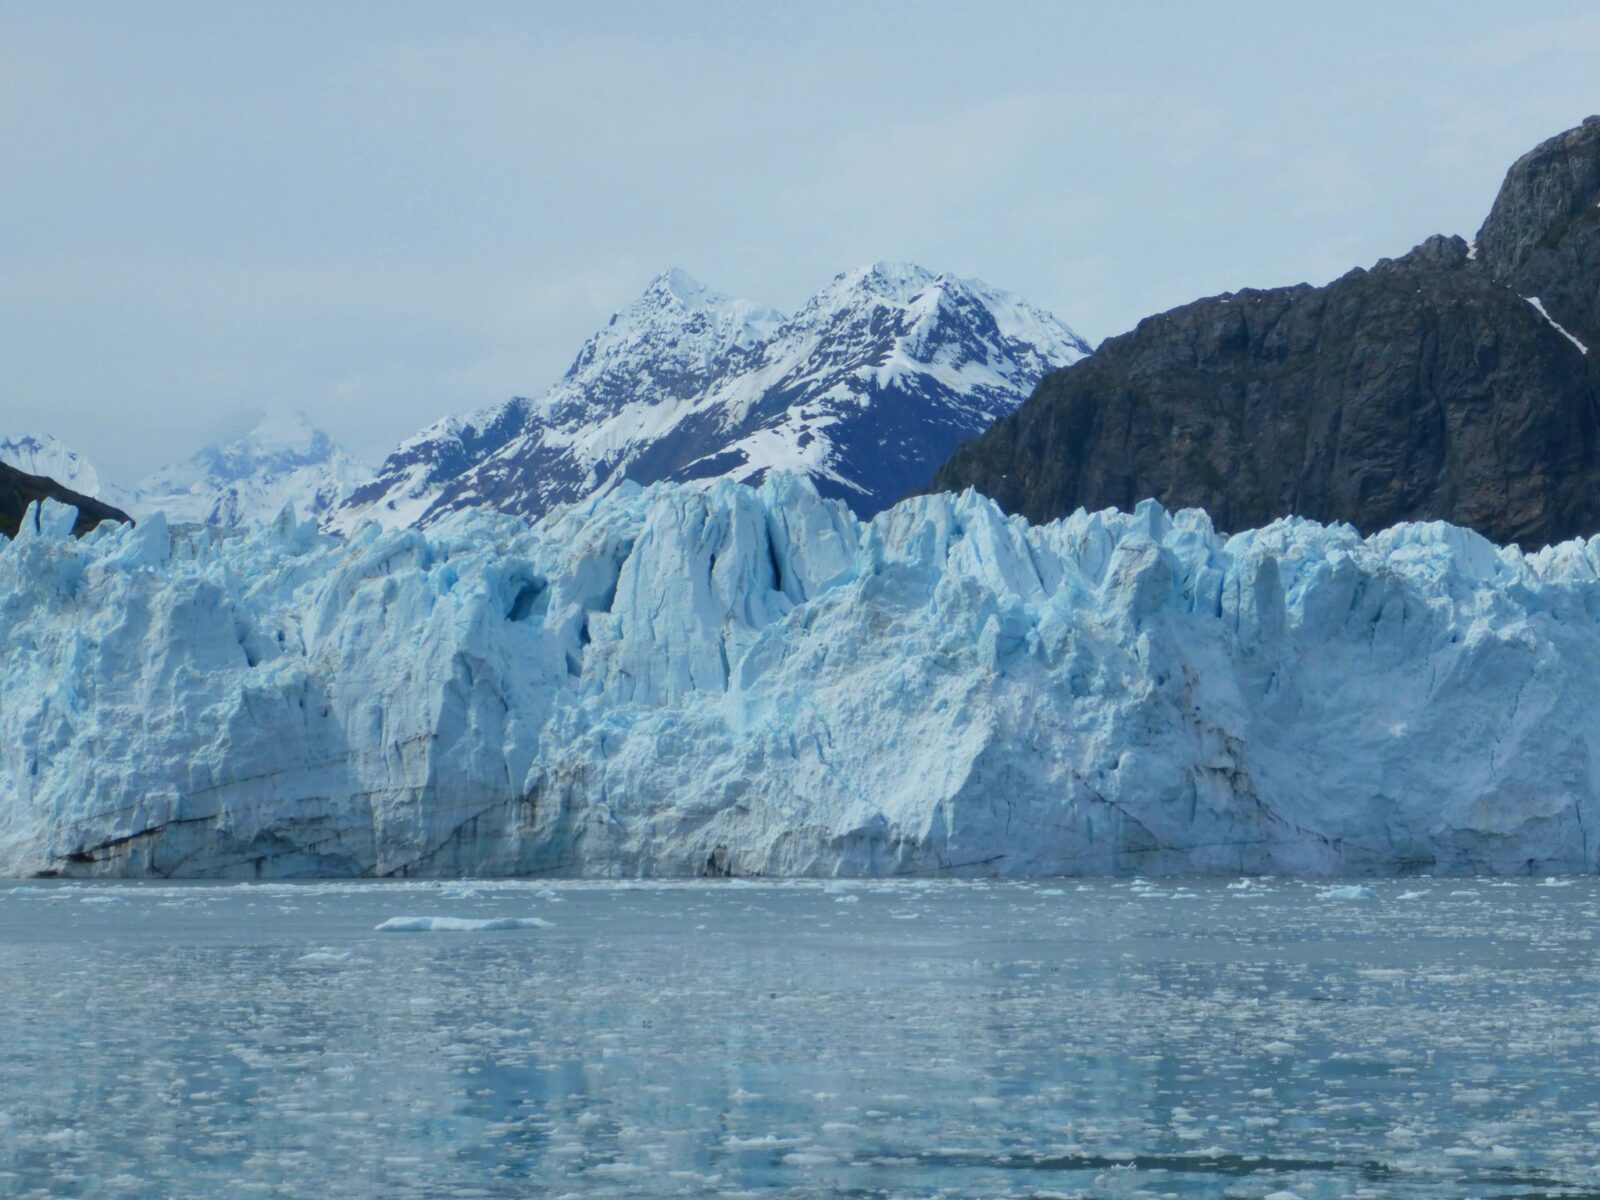 A glacier of blue ice at the ocean with lots of small icebergs floating in the water. There are tall snow covered mountains in the background